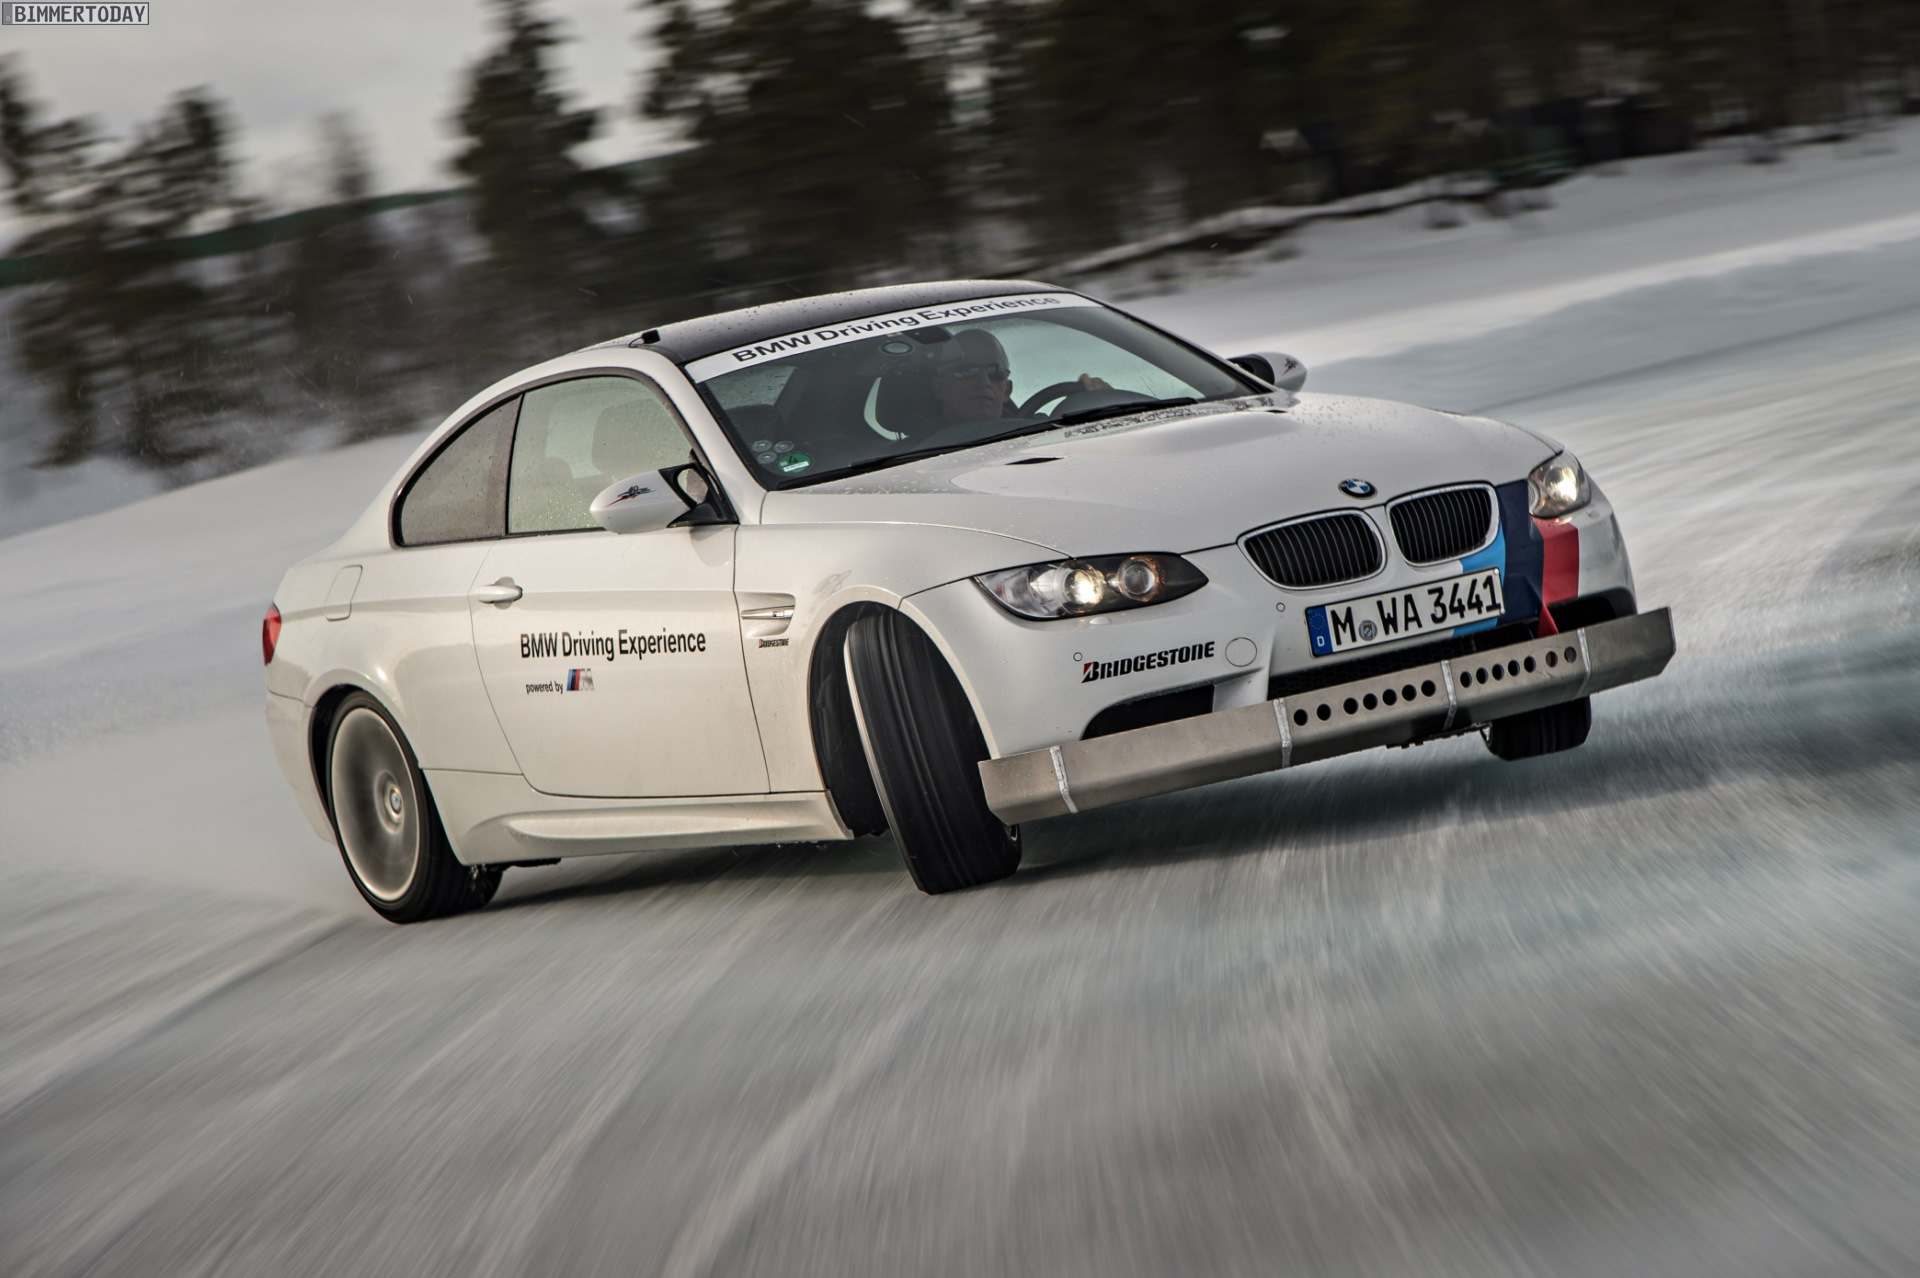 bmw ice power training drift video aus arjeplog zeigt m3. Black Bedroom Furniture Sets. Home Design Ideas